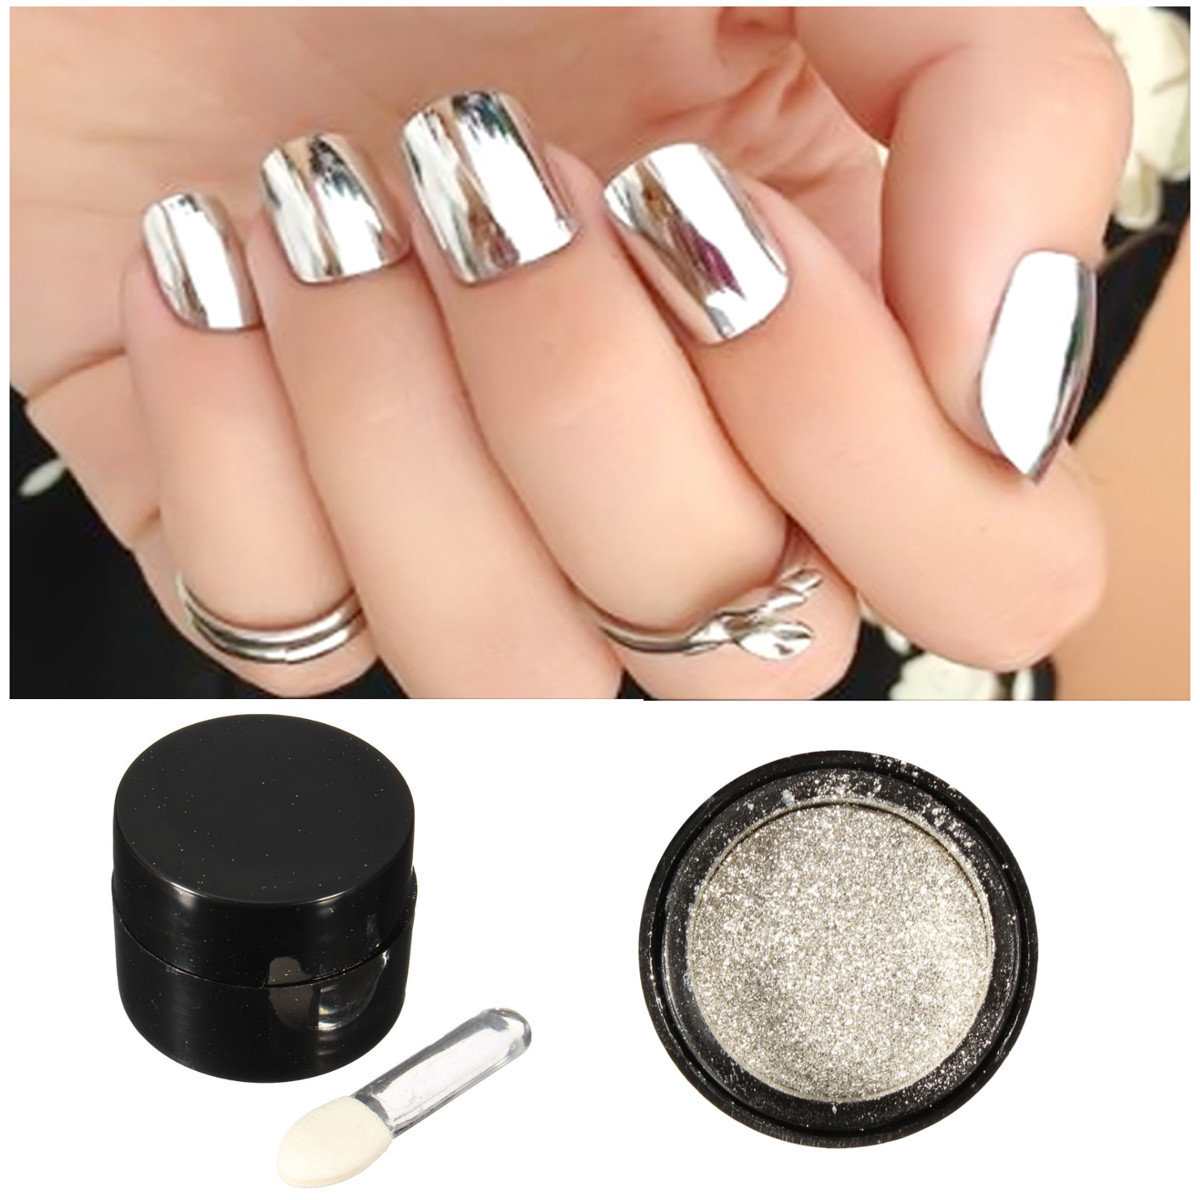 5g Silver Mirror Metallic Nail Powder Chrome Pigment Glitter Shining Dust Sequin Online Newchic